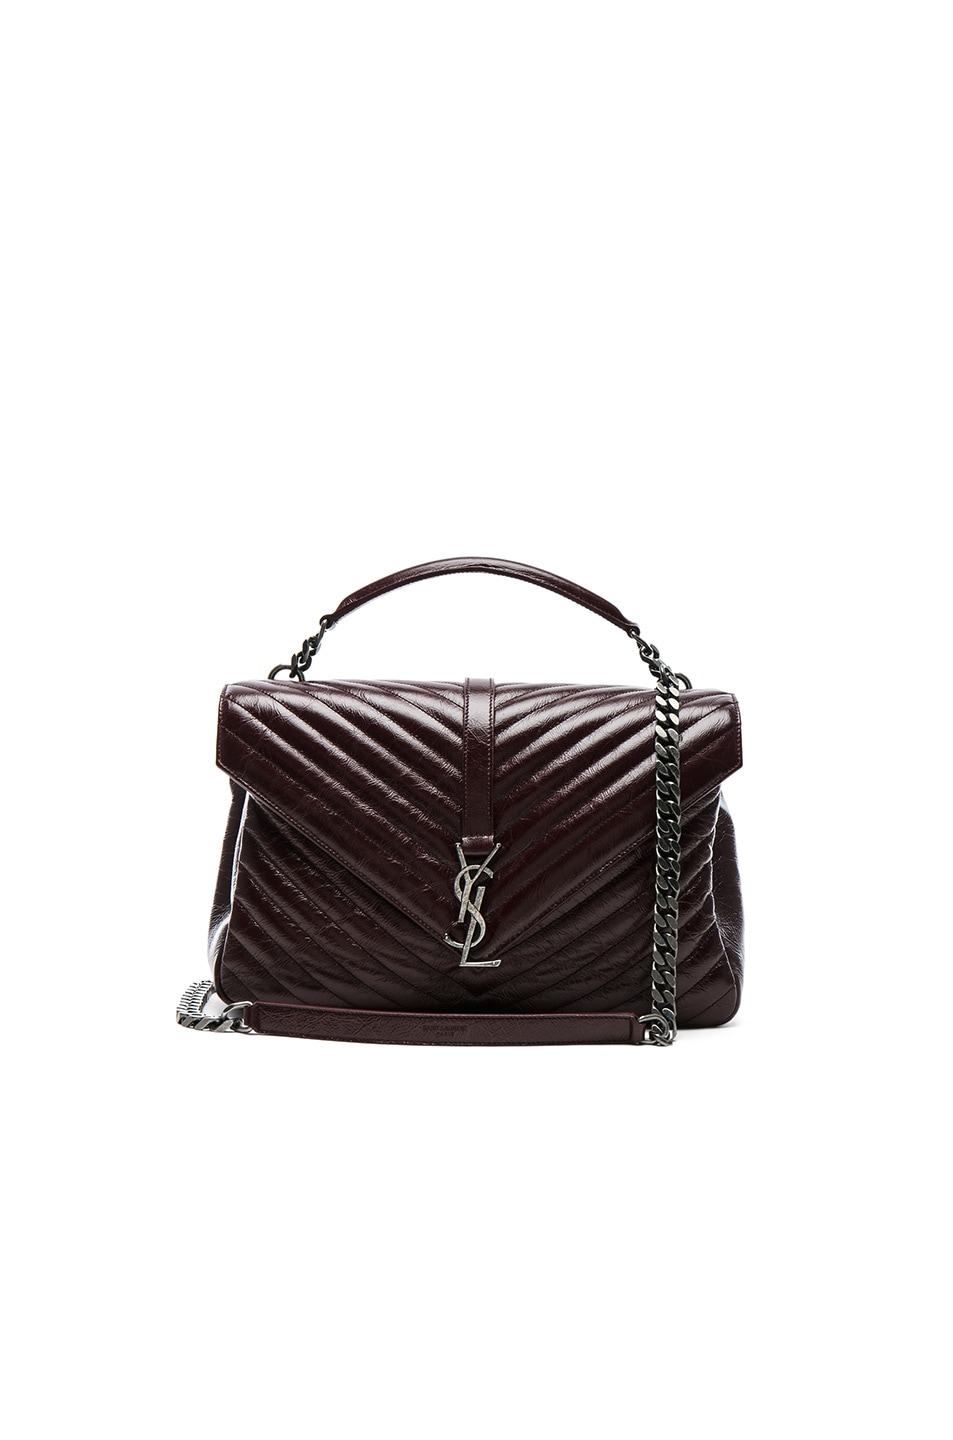 f3245437456b Image 1 of Saint Laurent Large Vintage Monogramme College Bag in Bordeaux